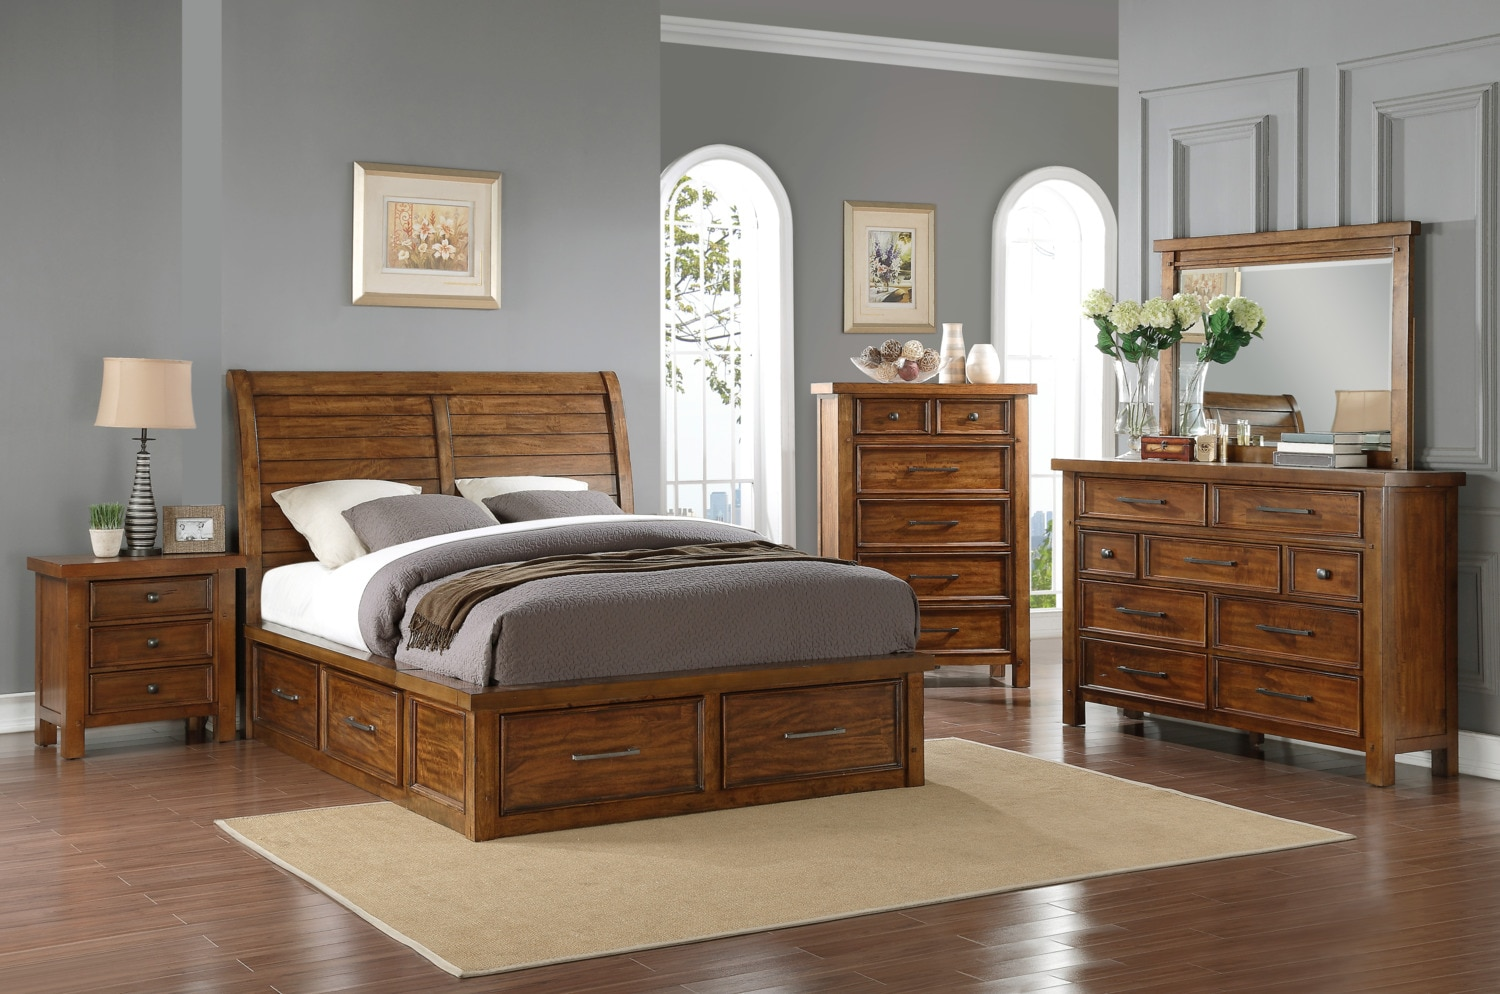 Sonoma Queen Storage Bed Medium Brown The Brick